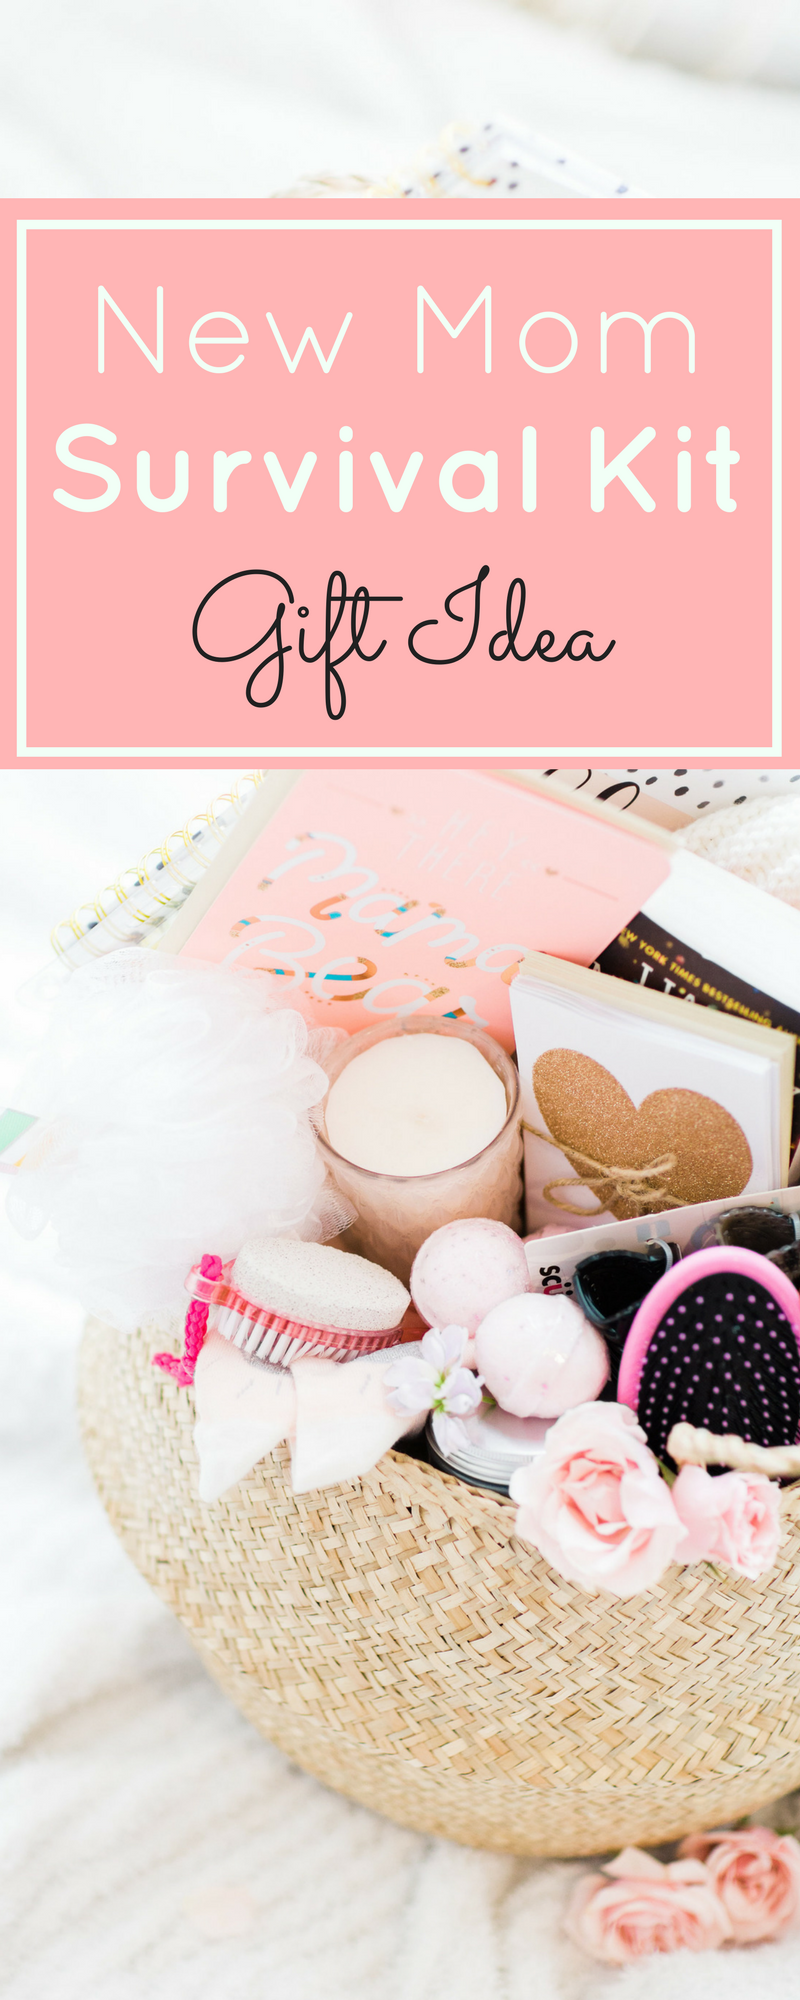 Lifestyle blogger Lexi of Glitter, Inc. shares how to make a new mom survival basket that any mama with a brand new baby would love. Click through for the DIY. | glitterinc.com | @glitterinc